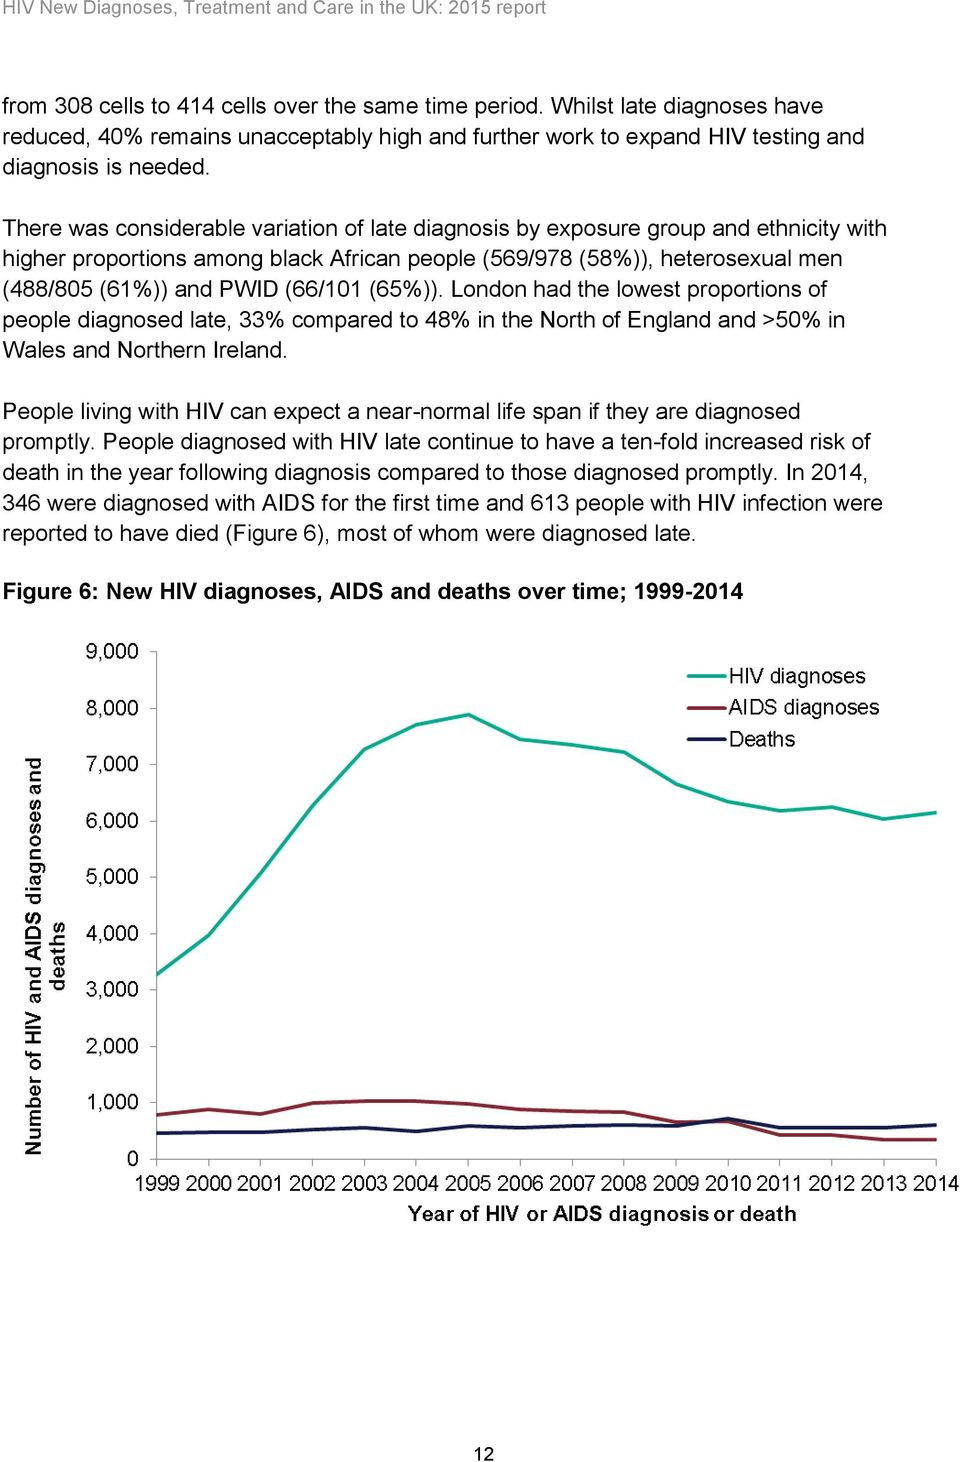 (66/101 (65%)). London had the lowest proportions of people diagnosed late, 33% compared to 48% in the North of England and >50% in Wales and Northern Ireland.